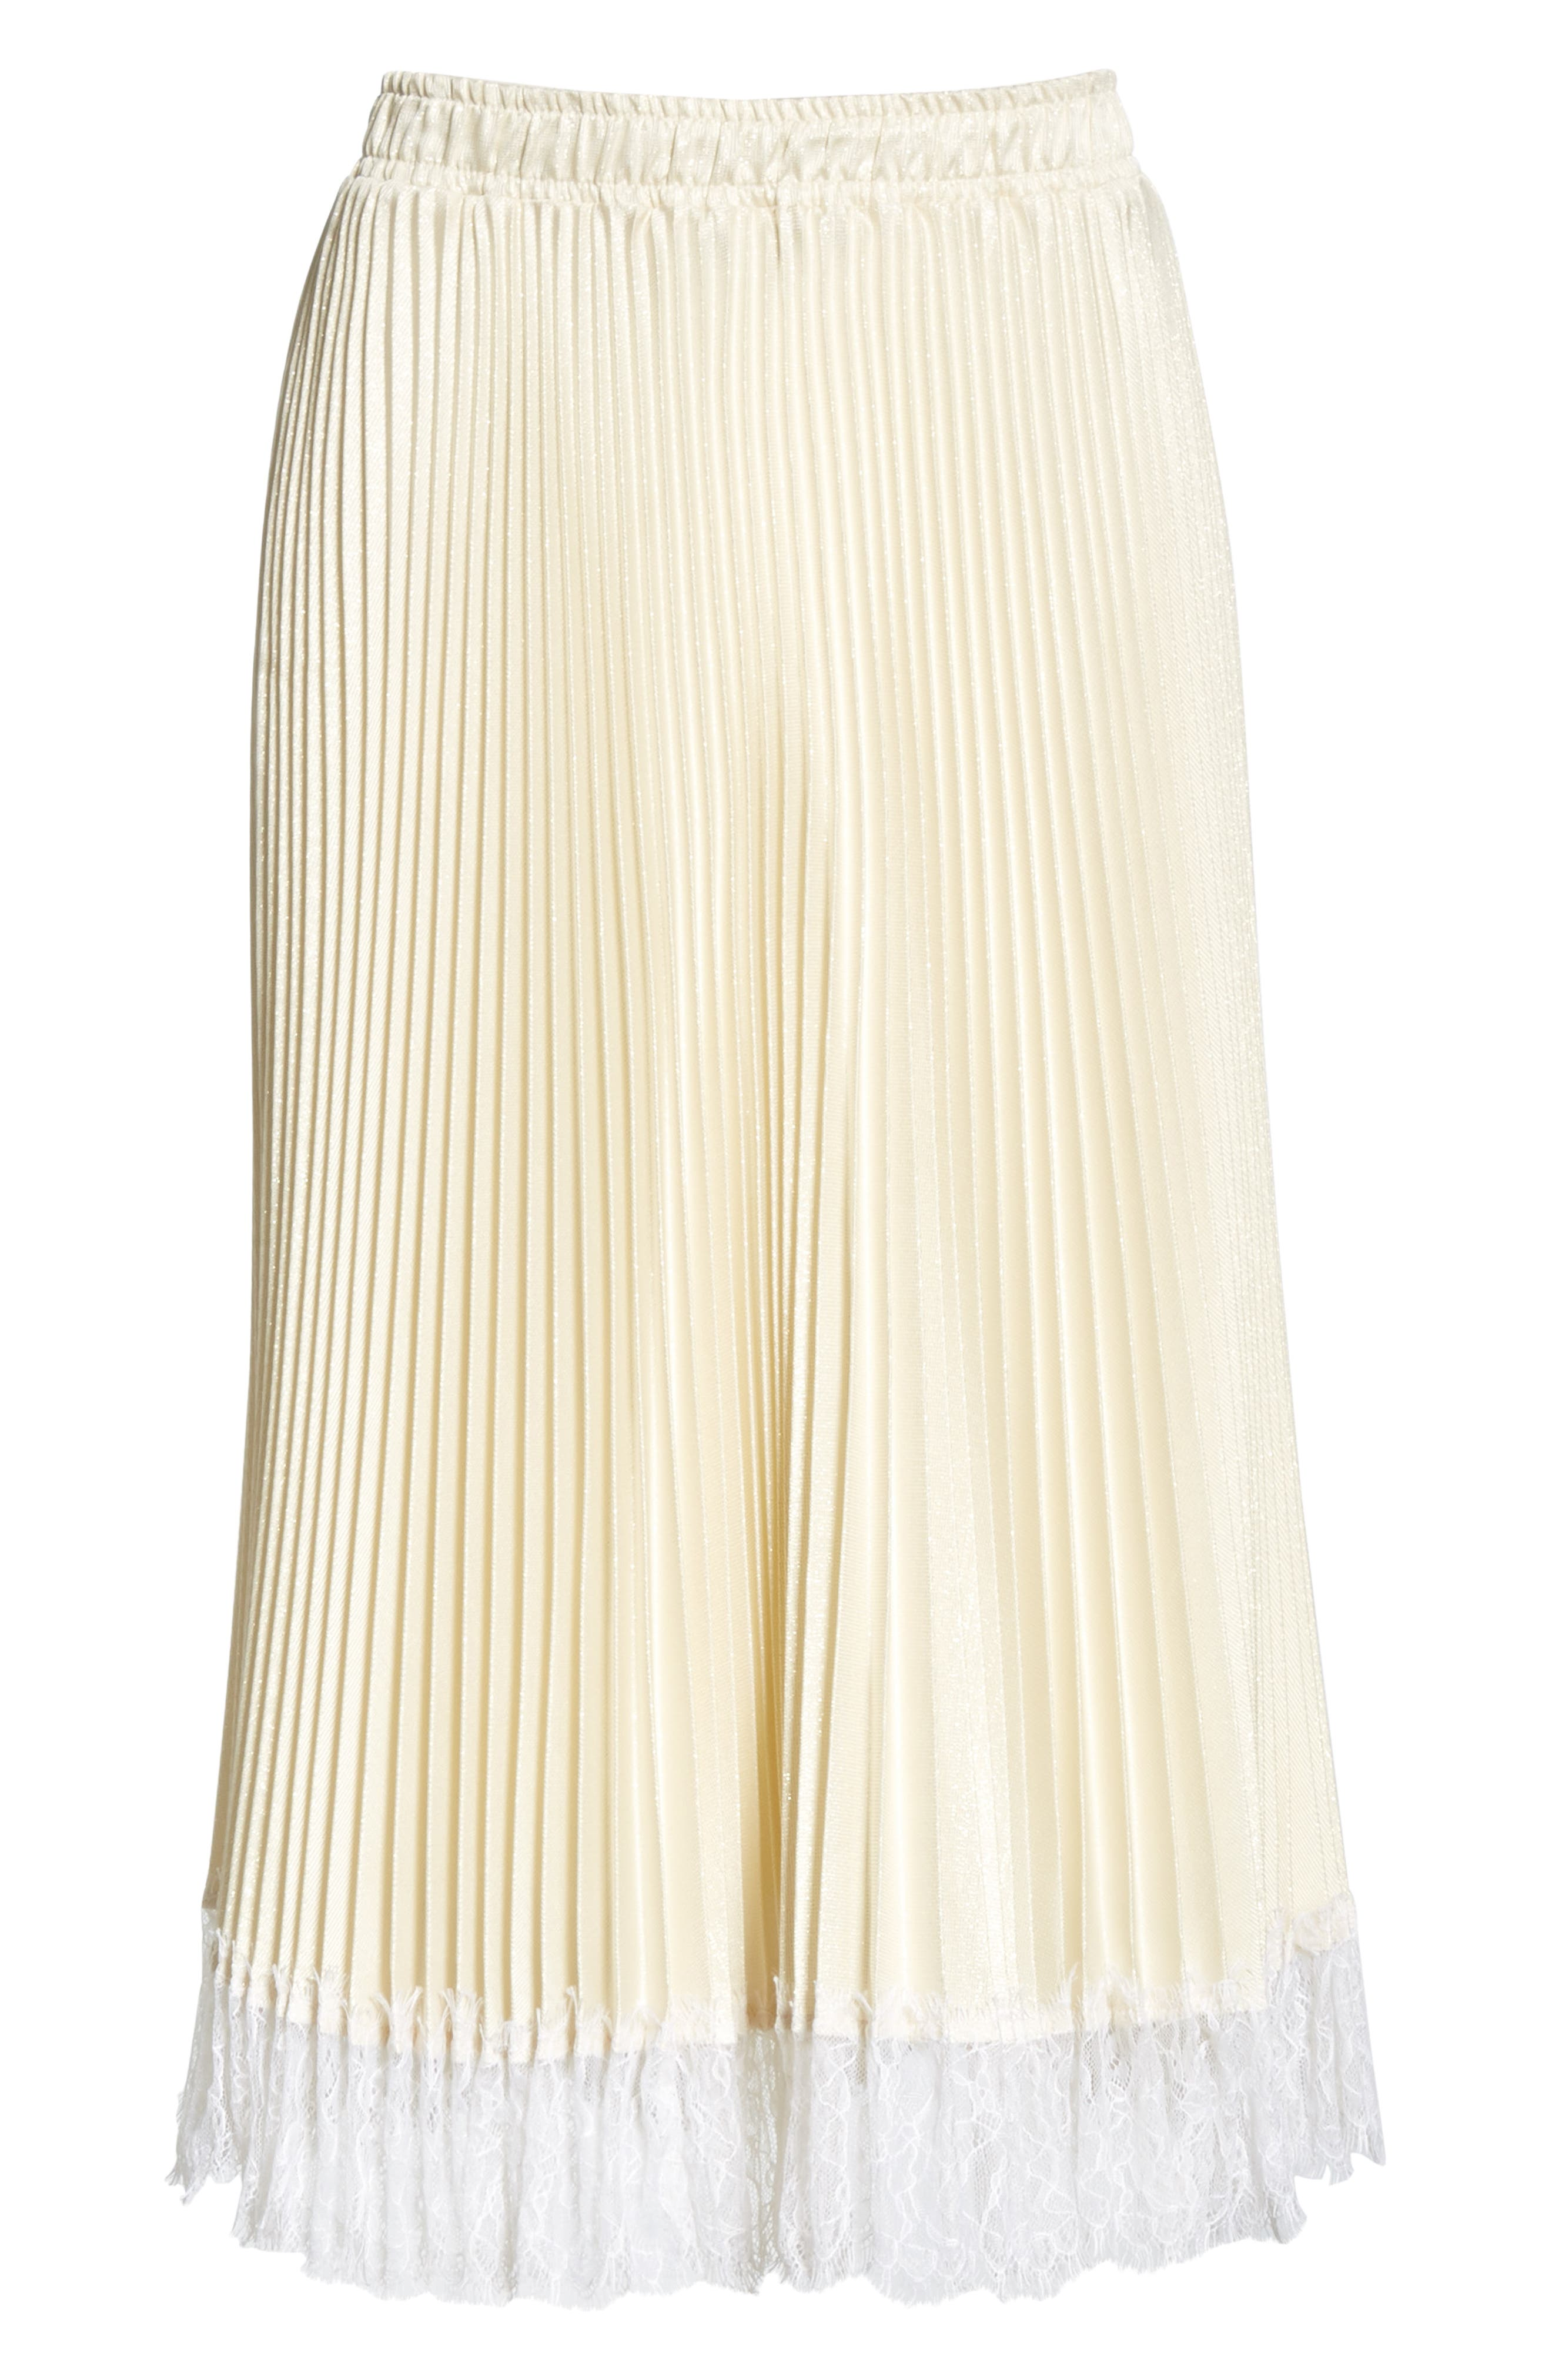 Pleated Metallic Lace Trim Skirt,                             Alternate thumbnail 6, color,                             CHAMPAGNE